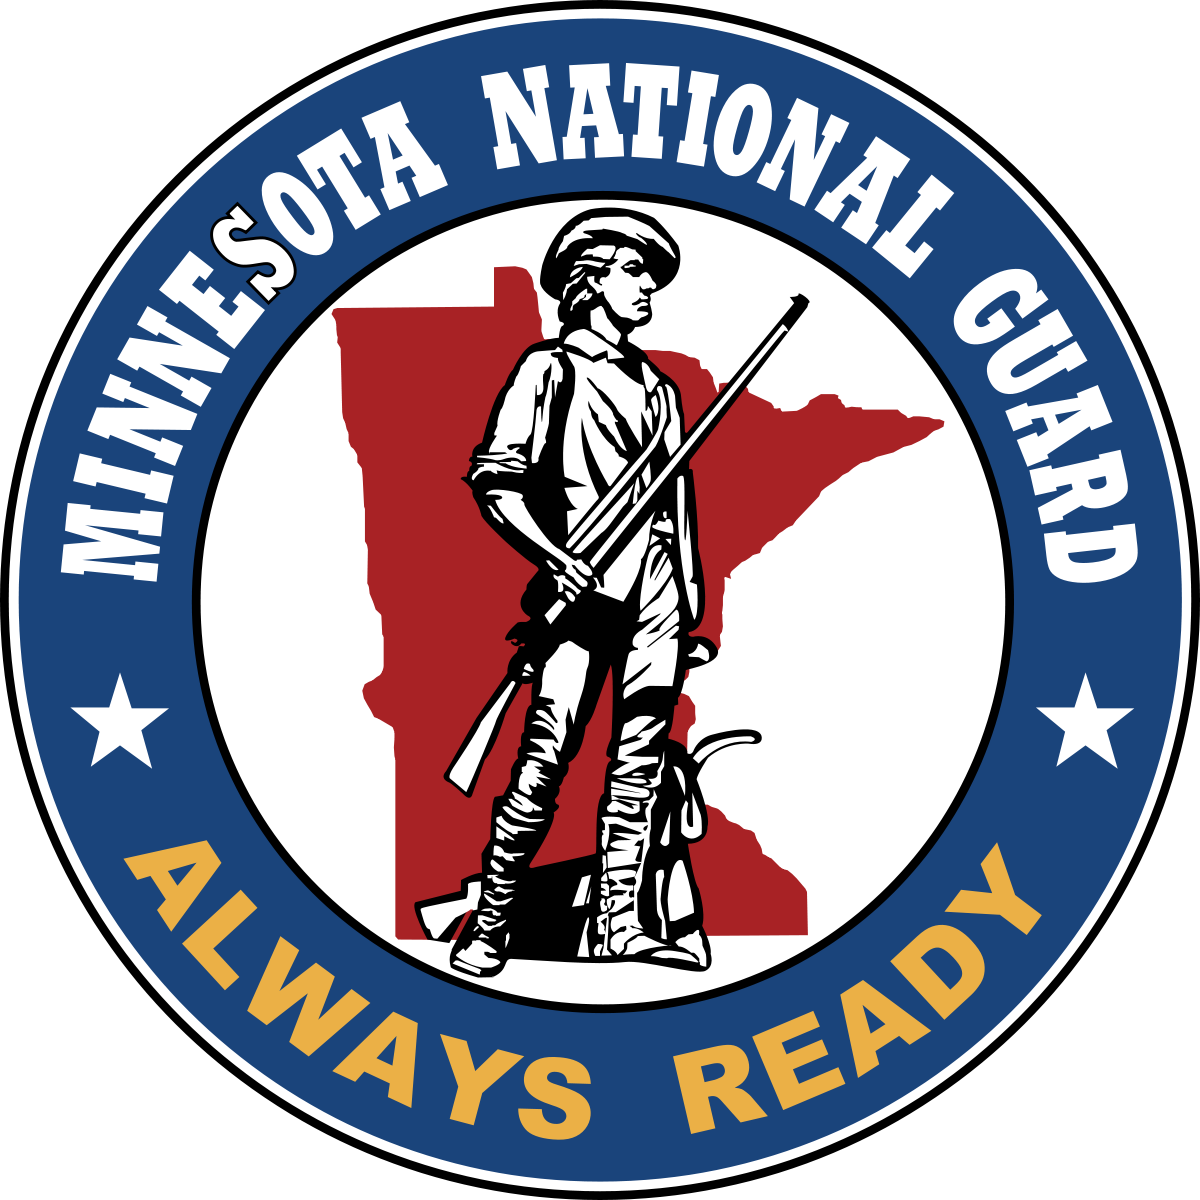 Minnesota national wikipedia . Pilot clipart security guard logo